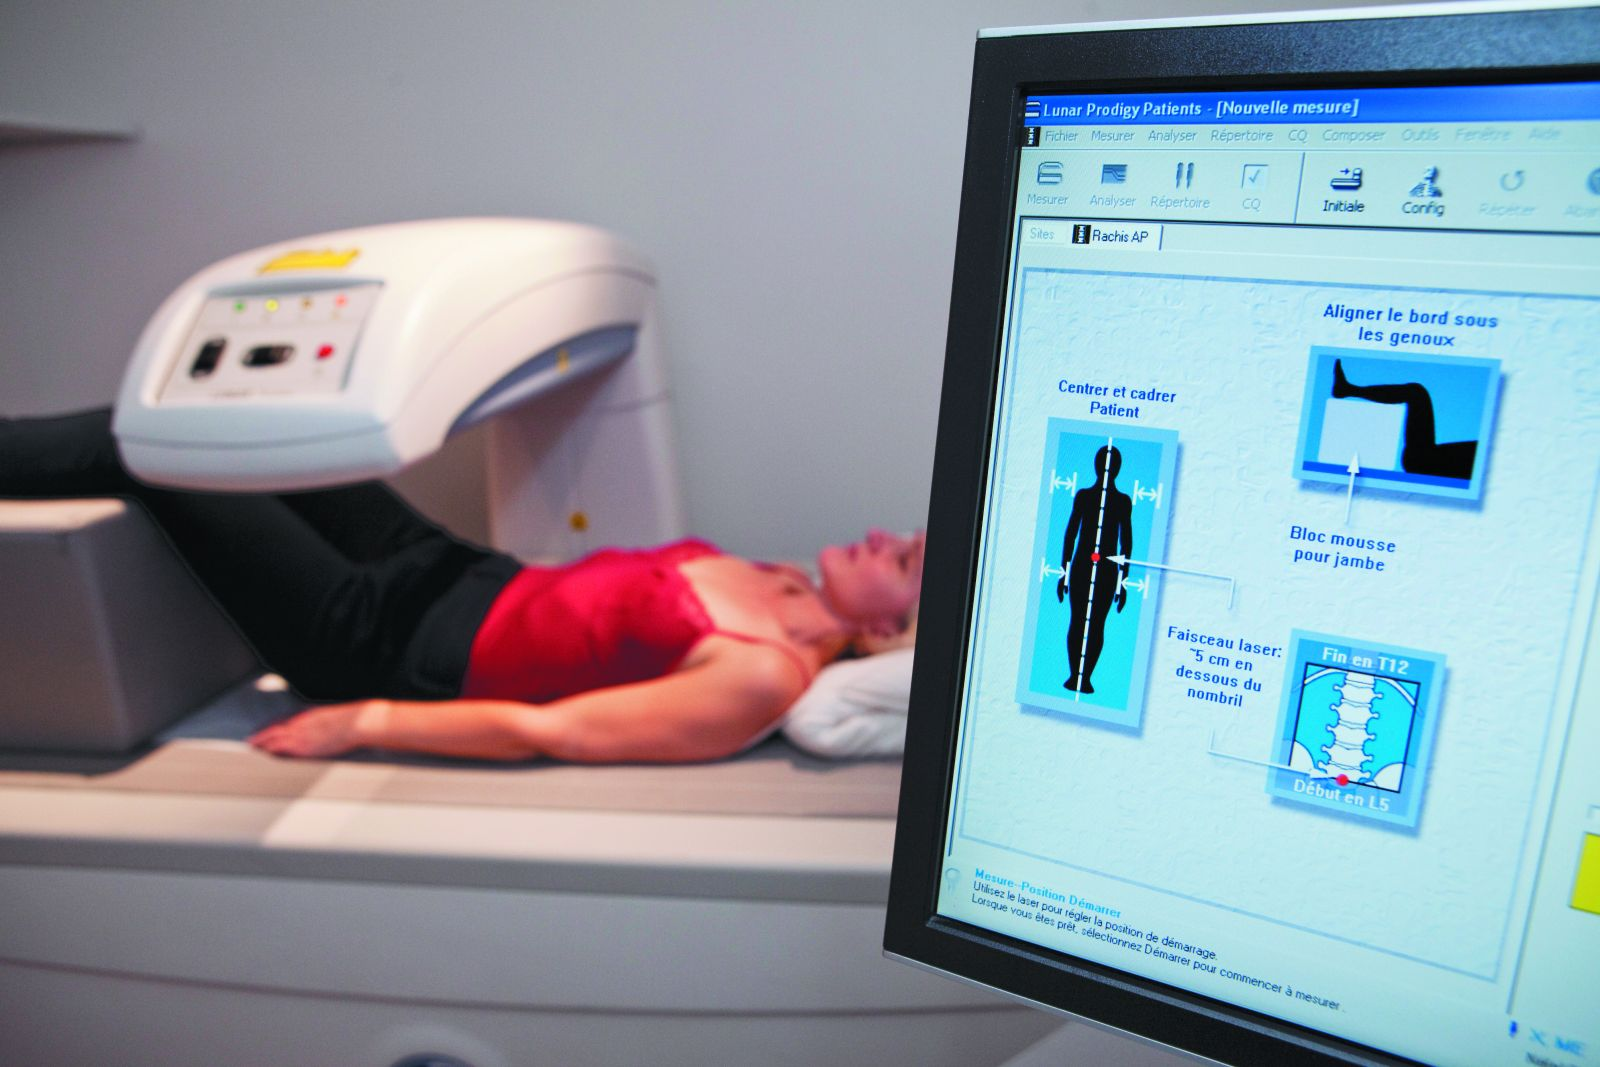 DEXA bone density scan